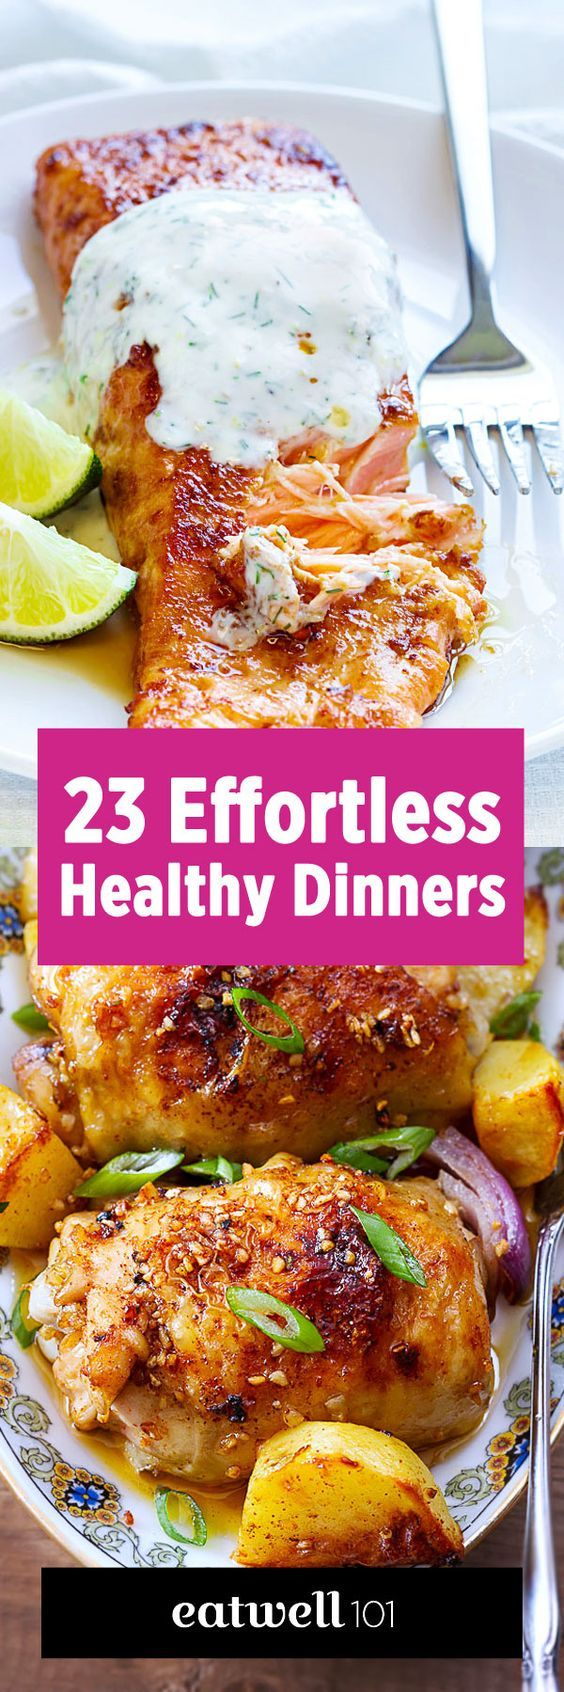 46 Low Effort and Healthy Dinner Recipes